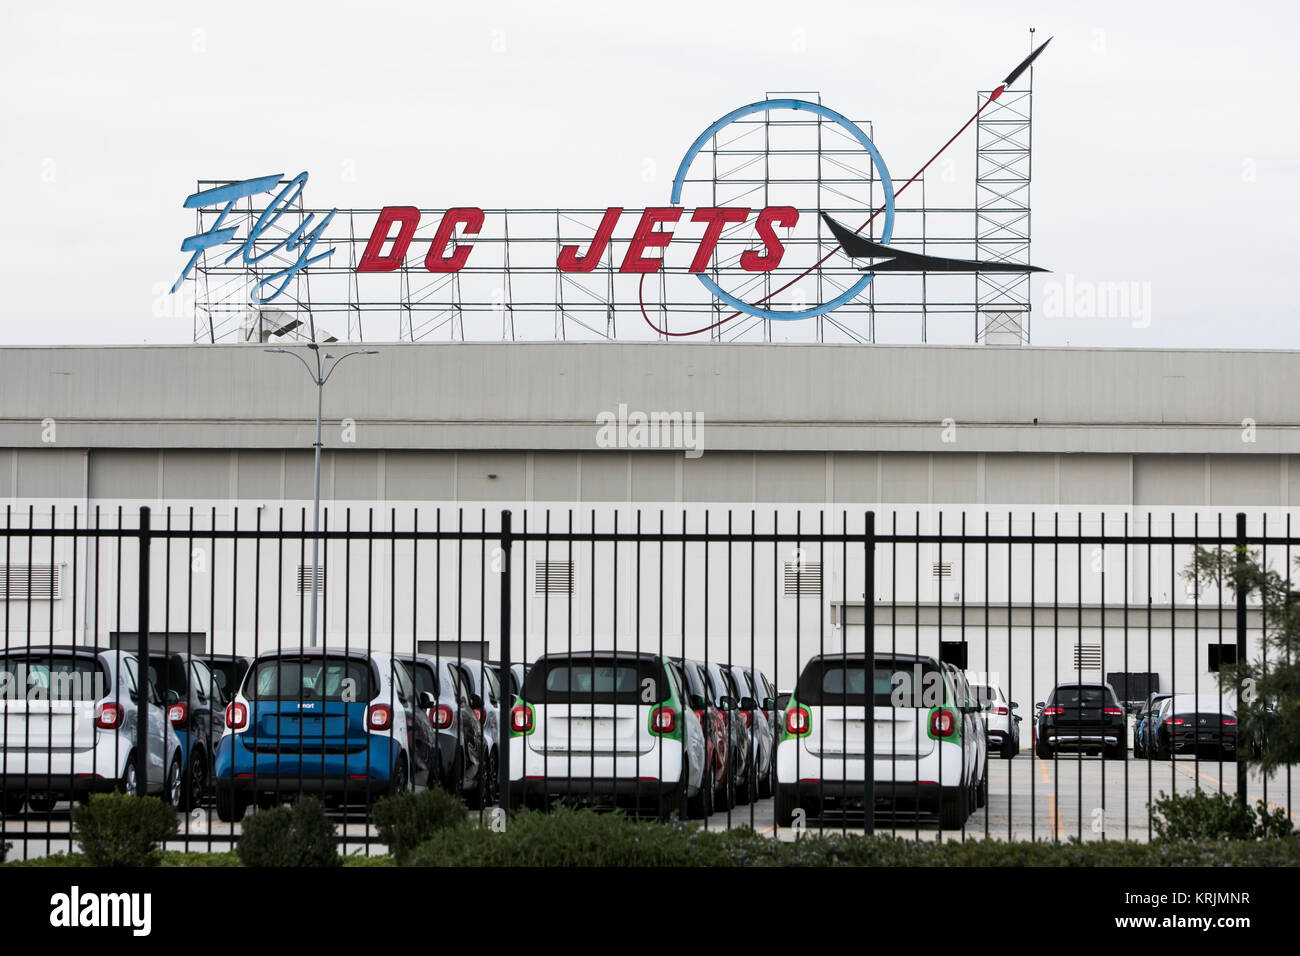 A 'Fly DC Jets' neon logo sign outside of the former Boeing 717 Jet Aircraft factory in Long Beach, California, - Stock Image